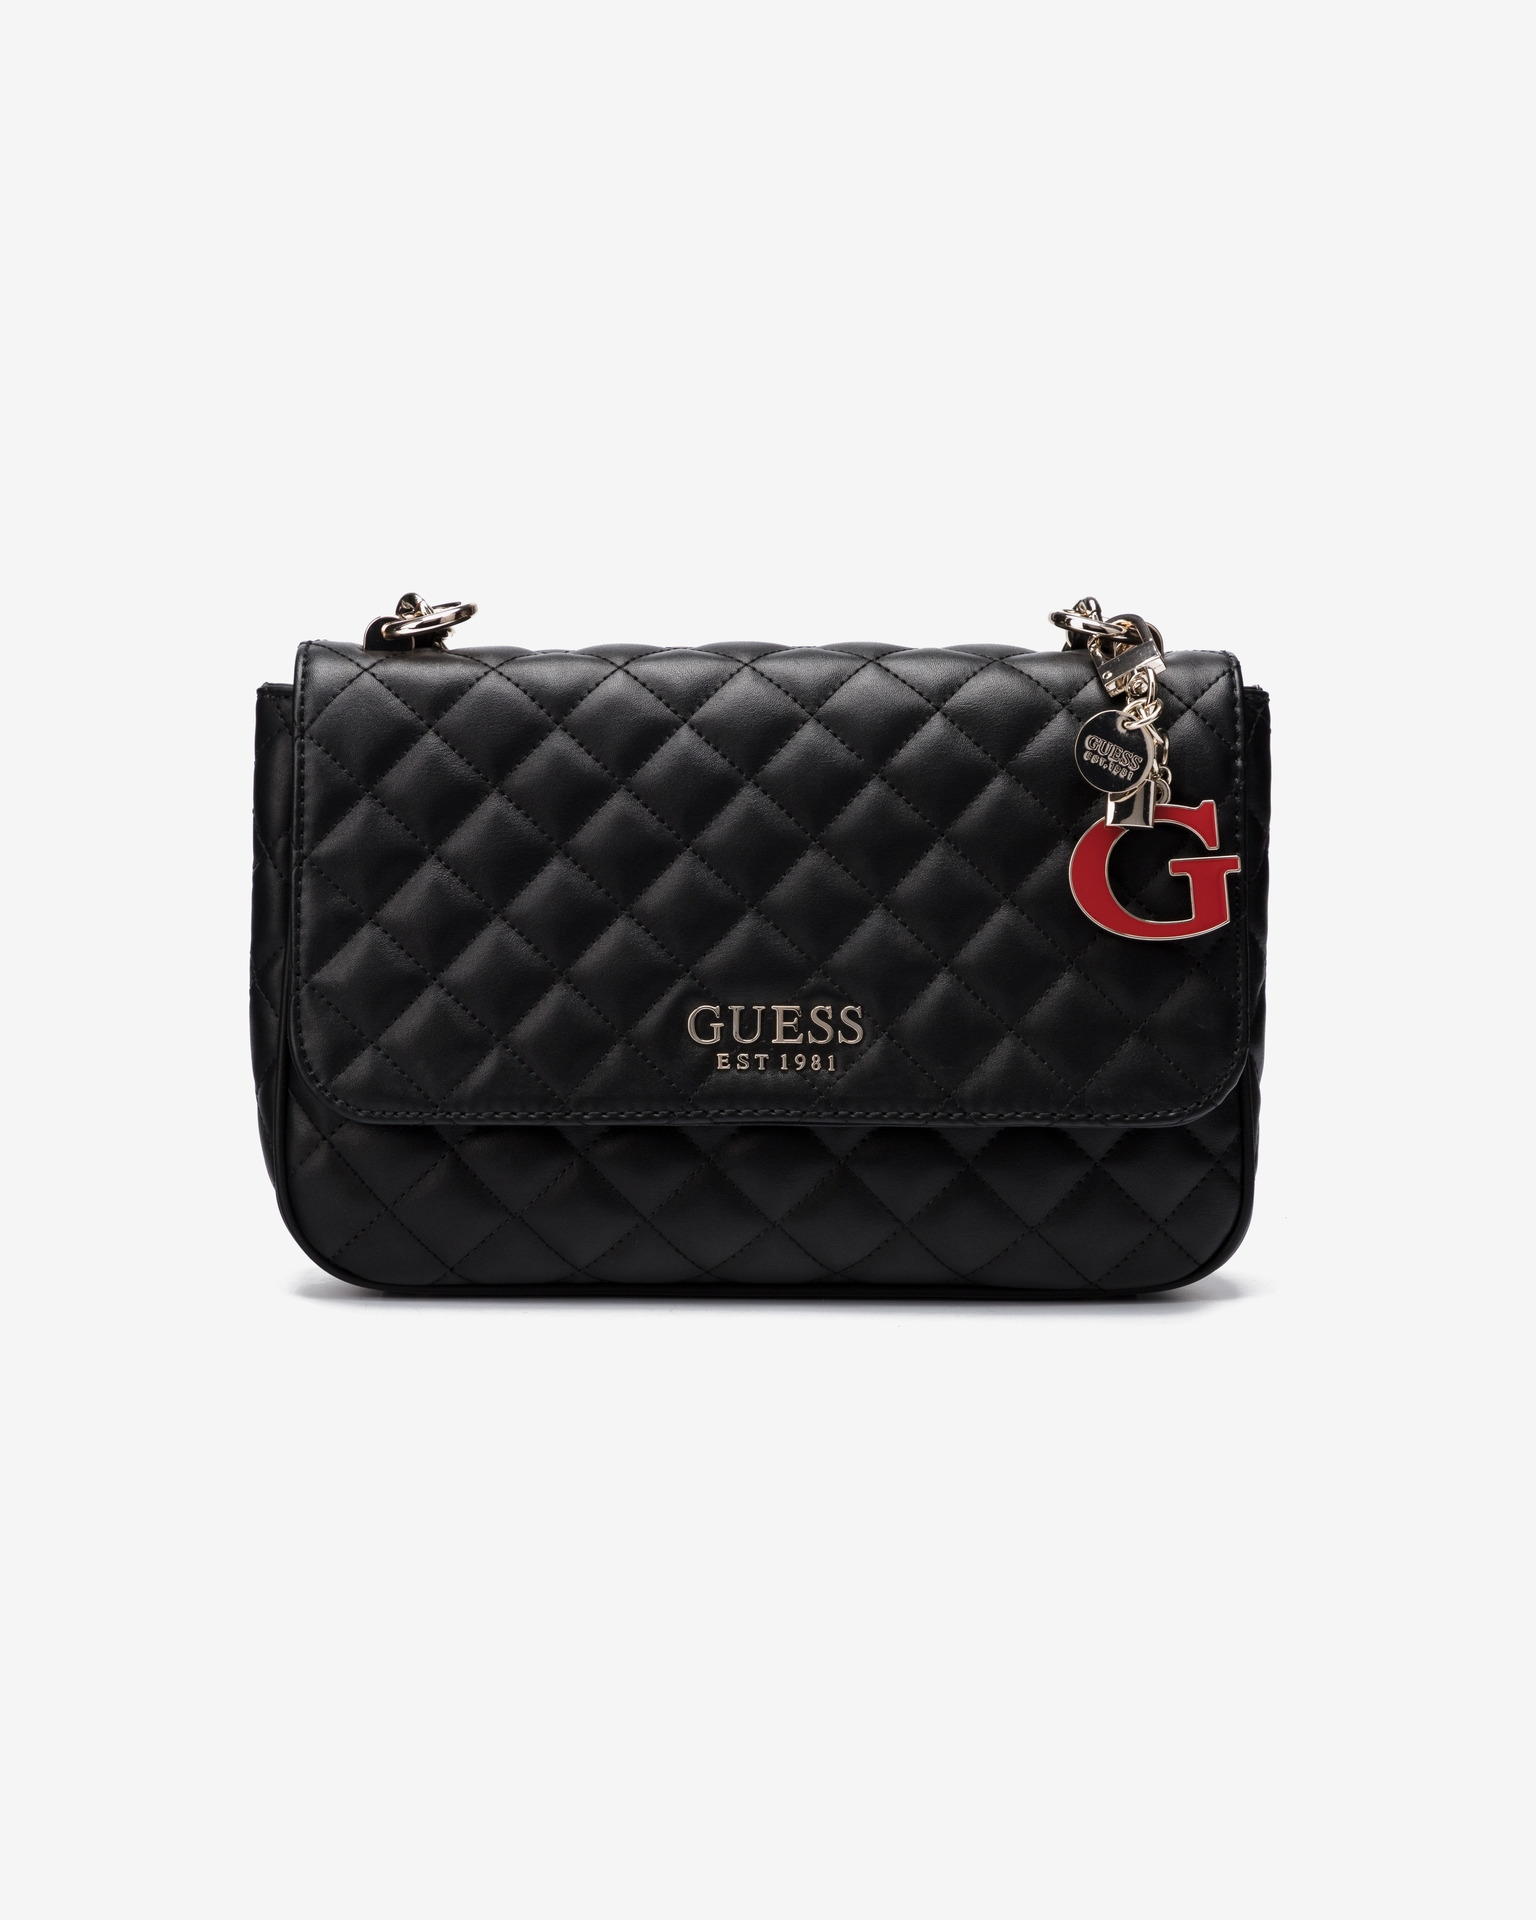 Dettagli su GUESS MELISE VG766720 borsa tracolla donna crossbody bag nero